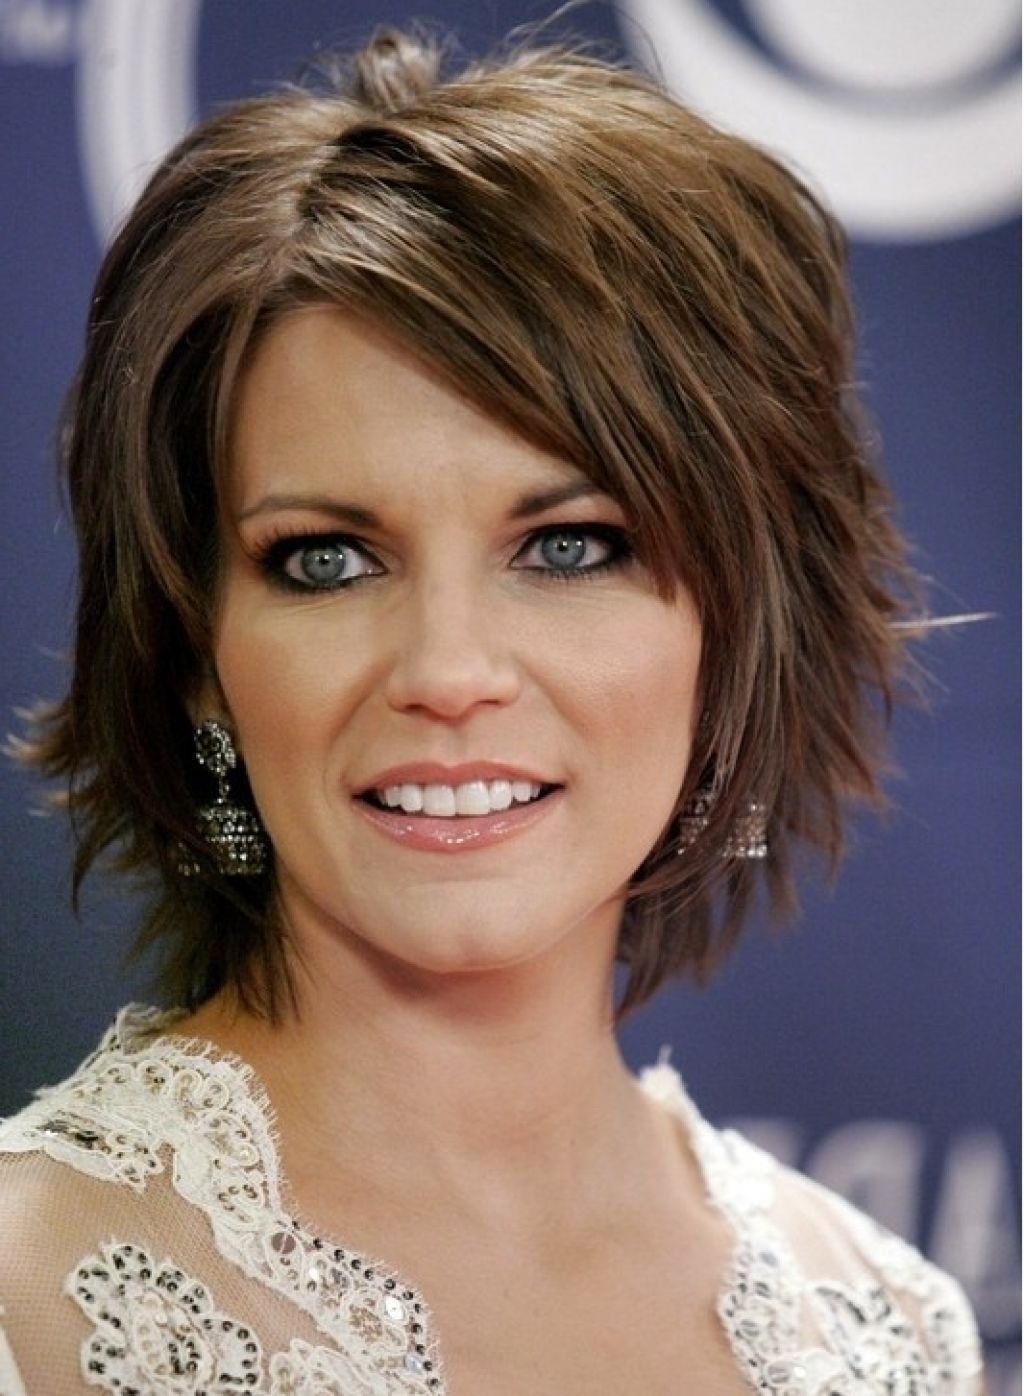 The Best Short Layered Bob Hairstyle Pictures Gallery Of Layered Pictures